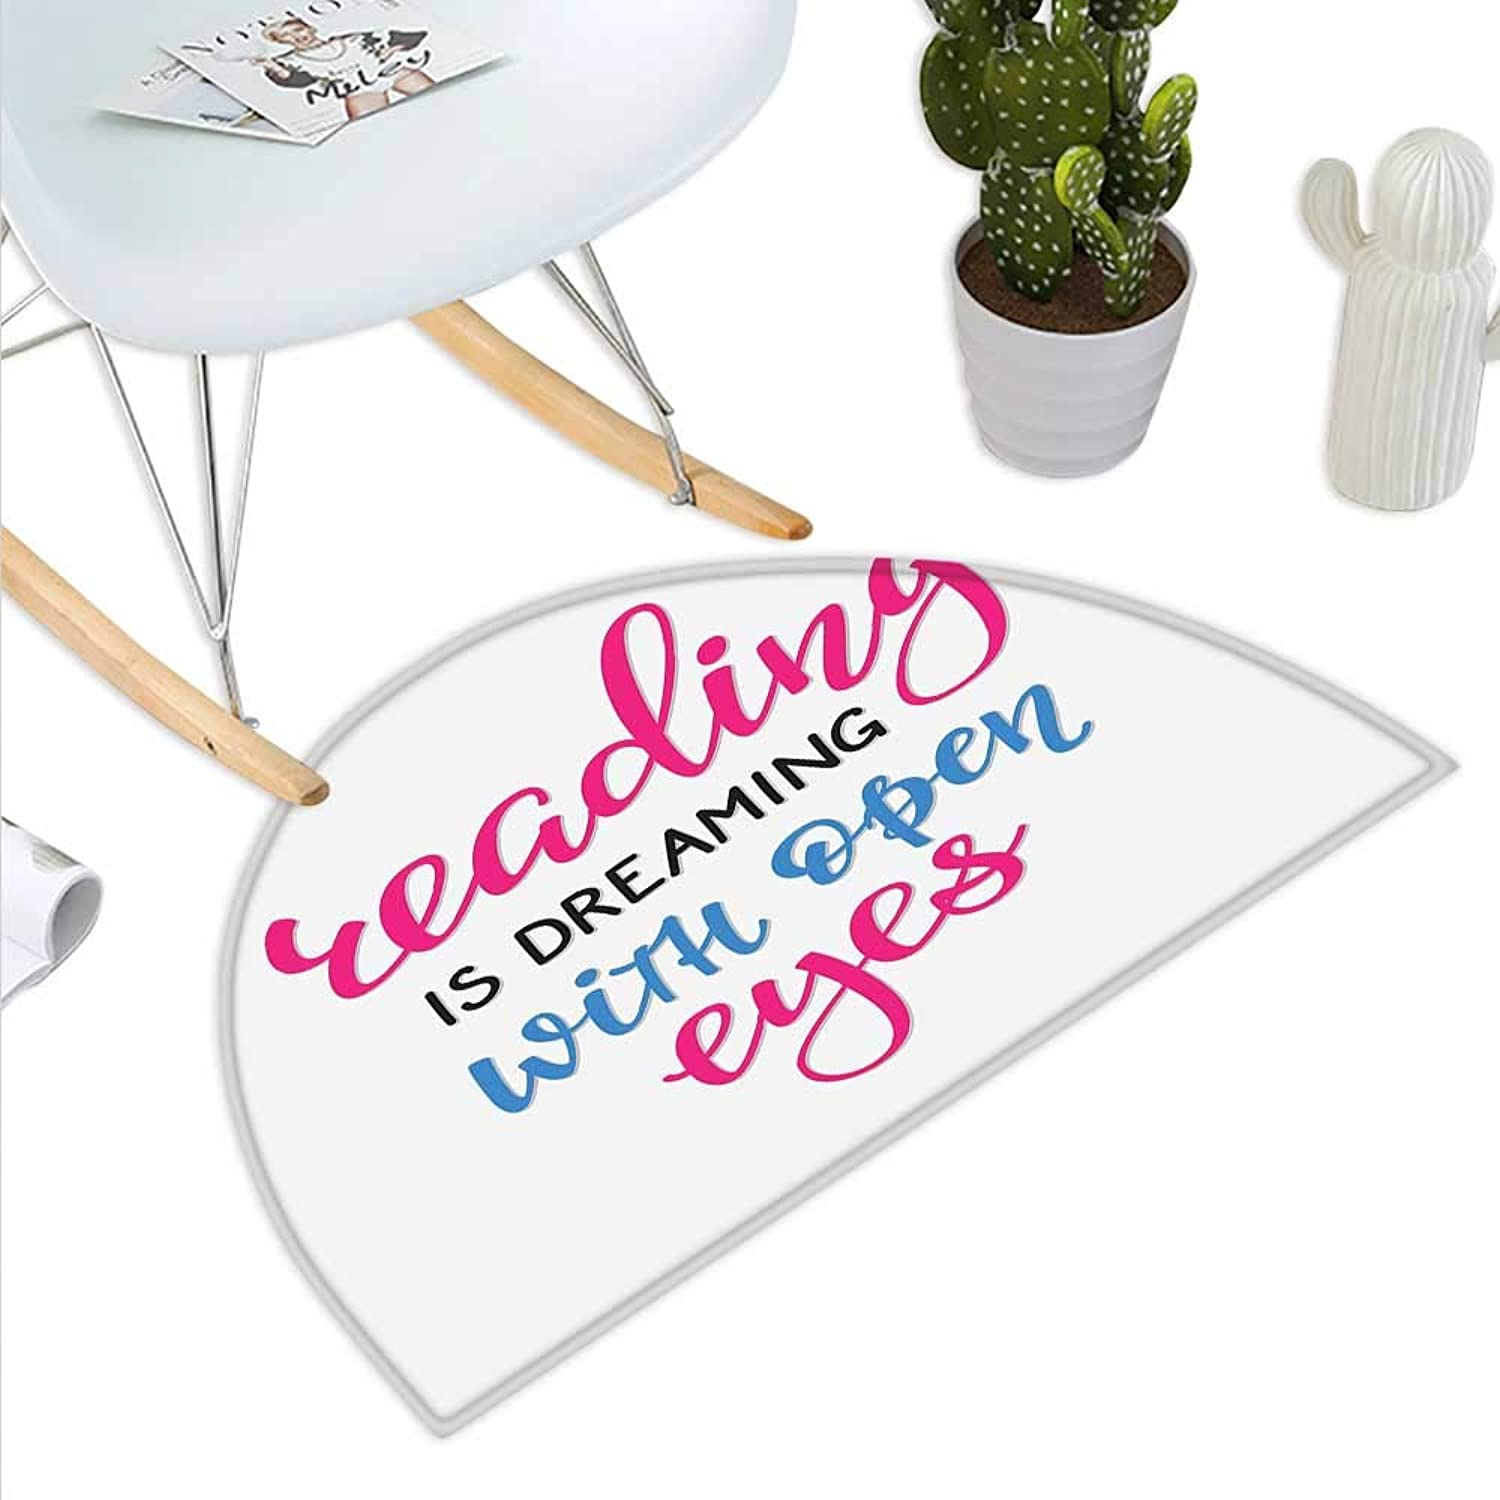 Book Semicircle Doormat Reading is Dreaming with Open Eyes Quotation Print on White Background Halfmoon doormats H 27.5  xD 41.3  Azure bluee Magenta Black